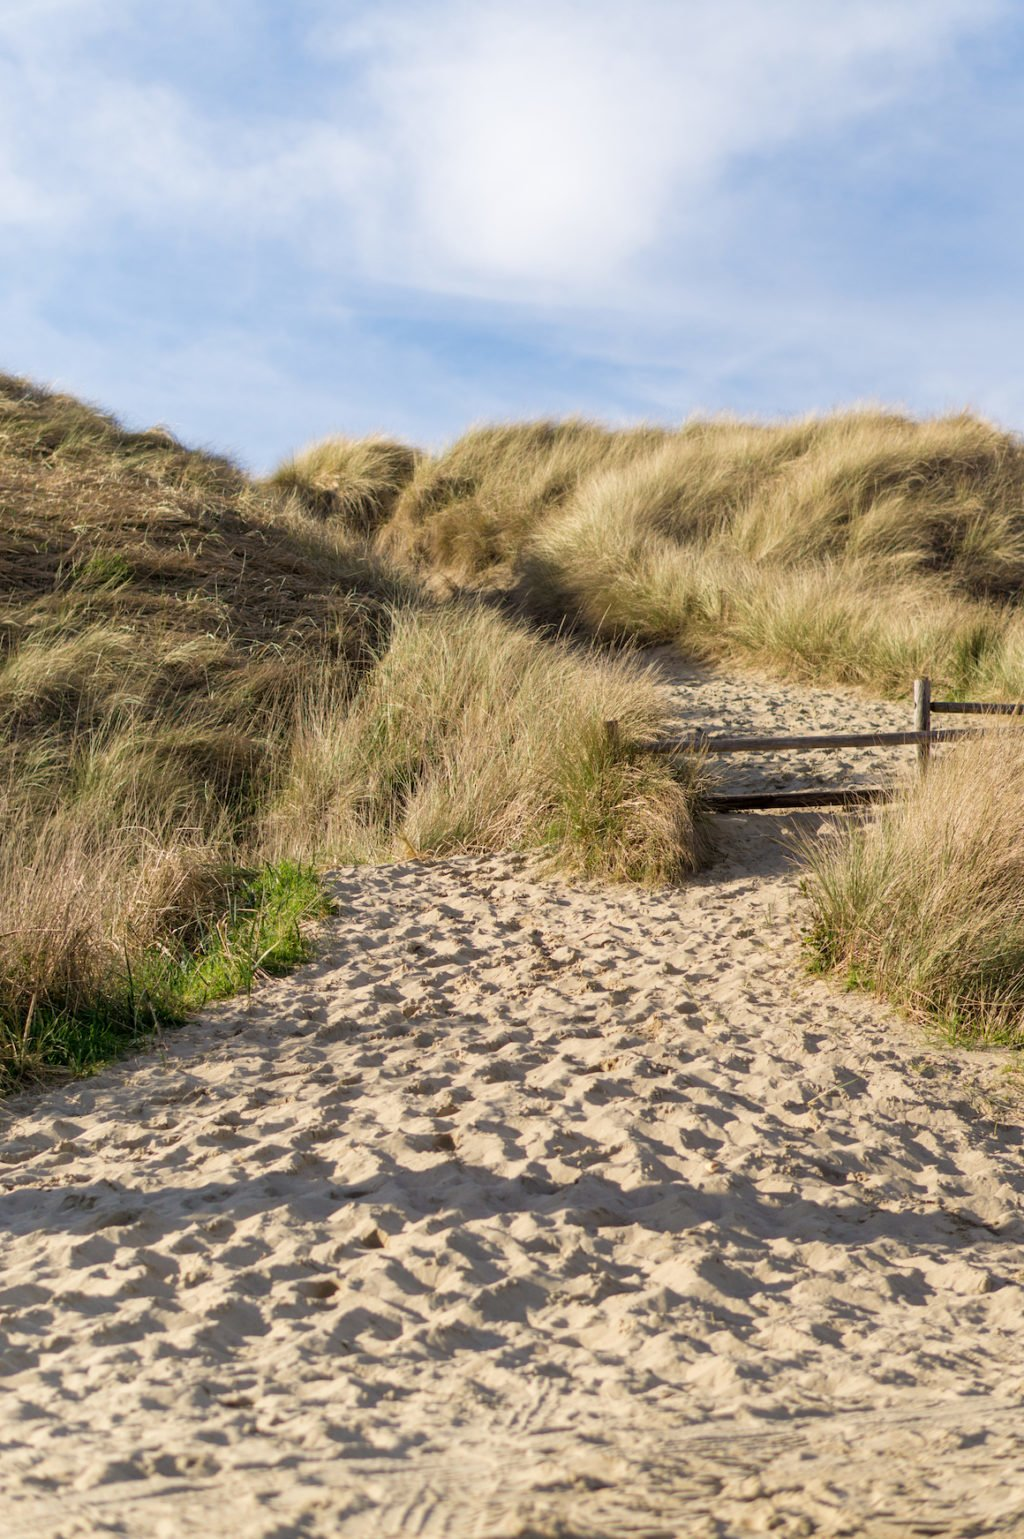 More Sand Dunes •25 Photos to Spark Your Visit to the Oregon Coast | The Wanderful Me